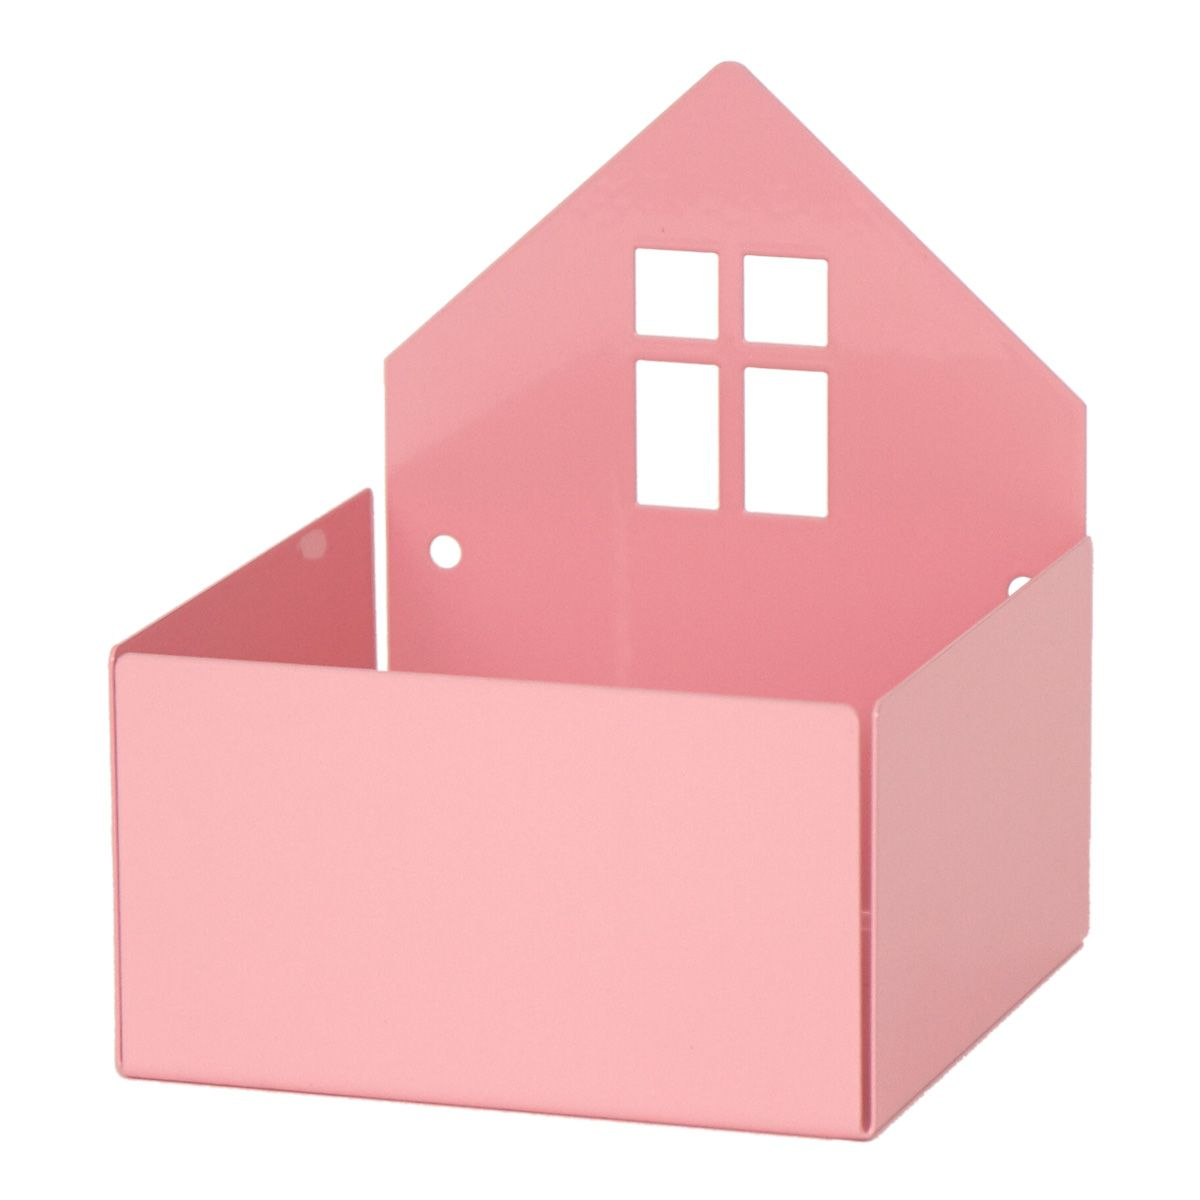 Wandregal & Box 'Haus' rosa